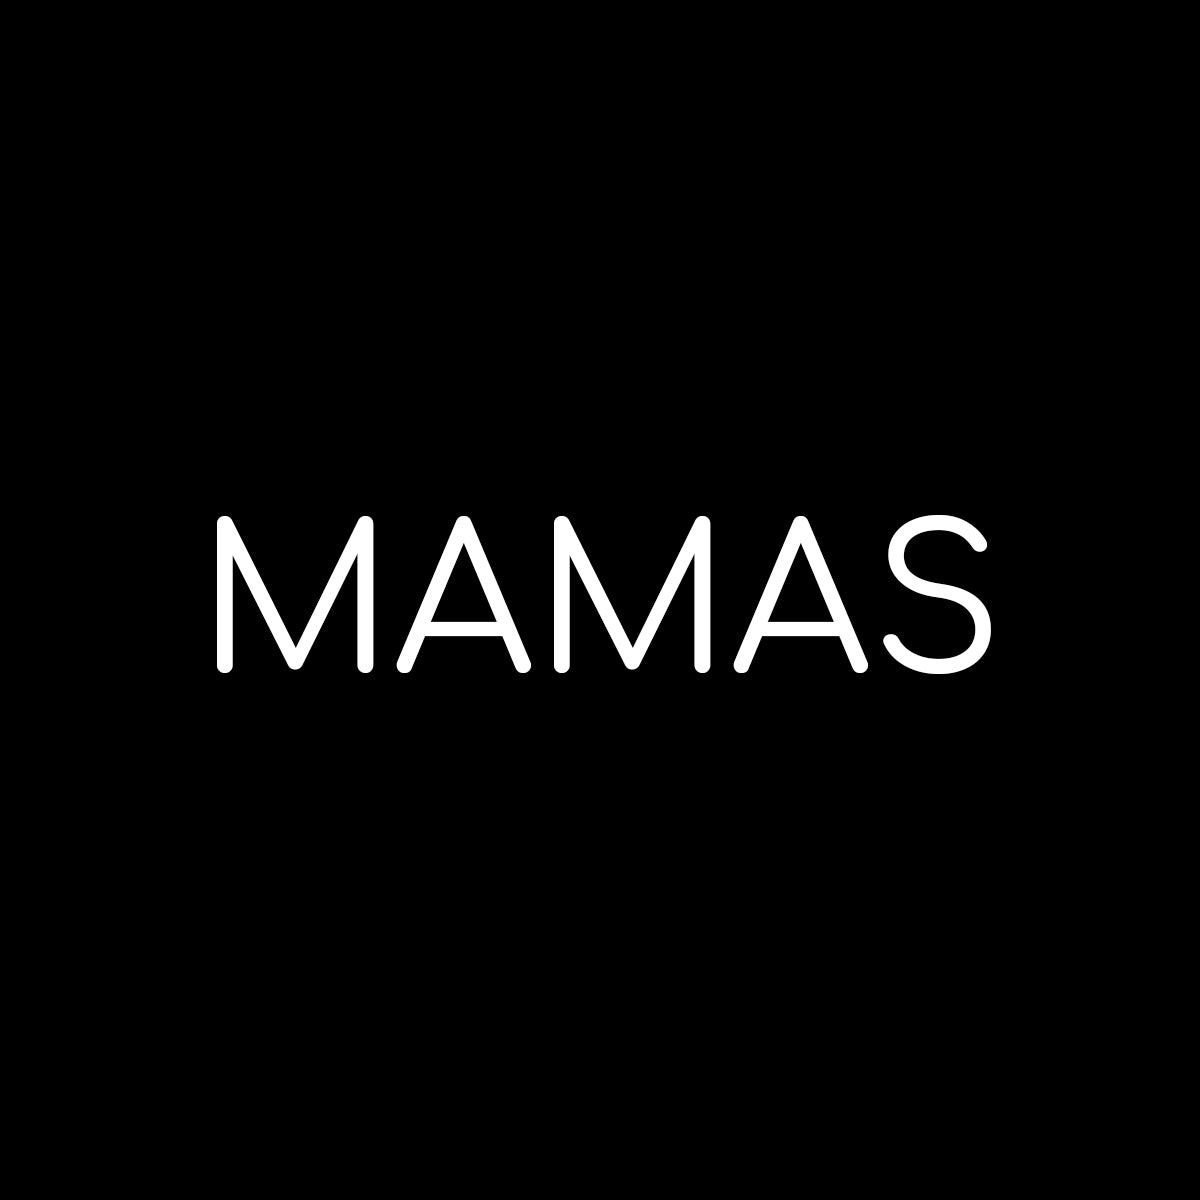 For Mamas